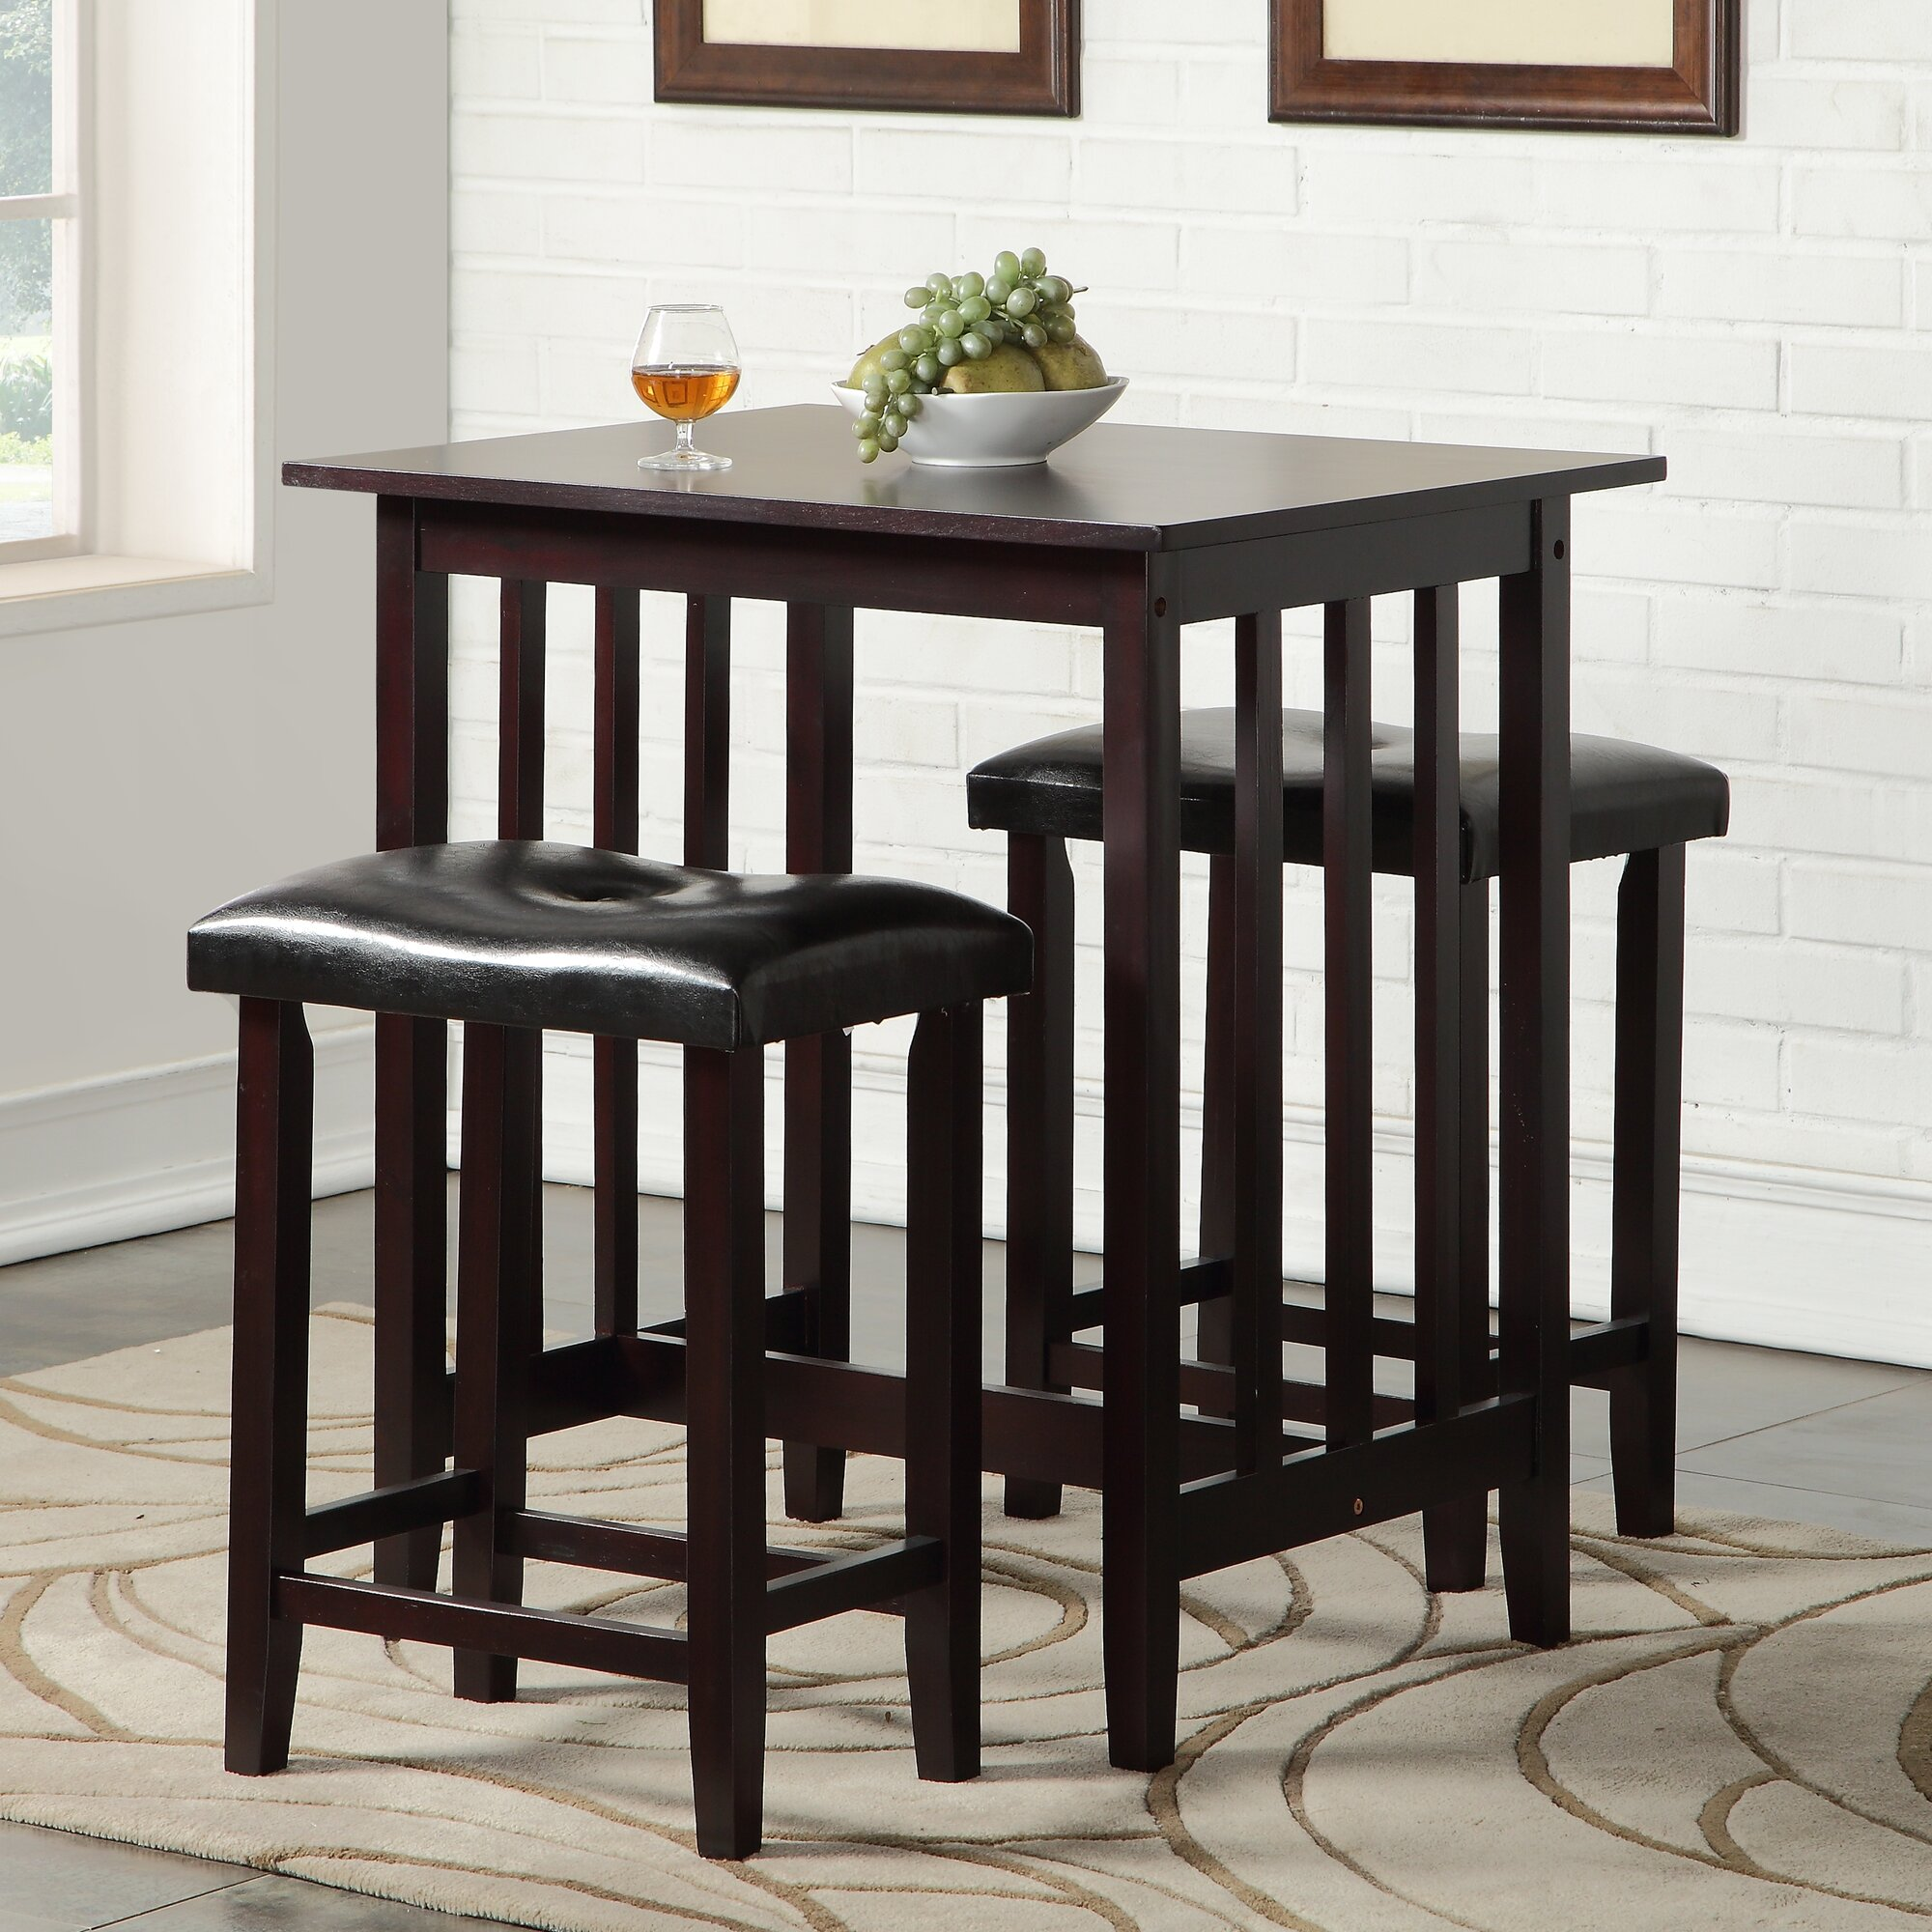 Kitchen pub table and chairs - Richland 3 Piece Counter Height Pub Table Set